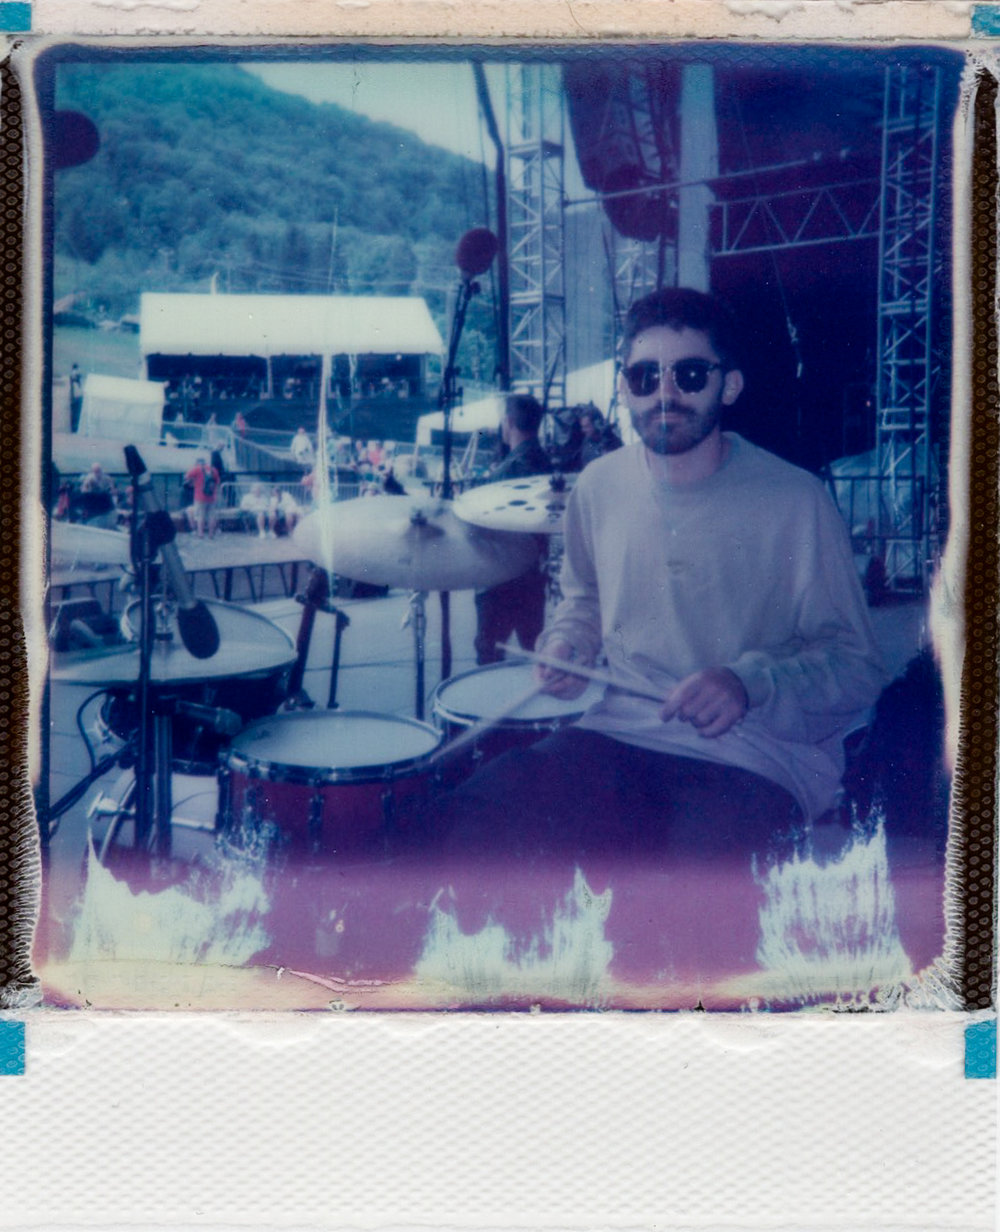 mary_caroline_russell_music_photographer_altanta_nashville_mountain_jam_2017_polaroid_3